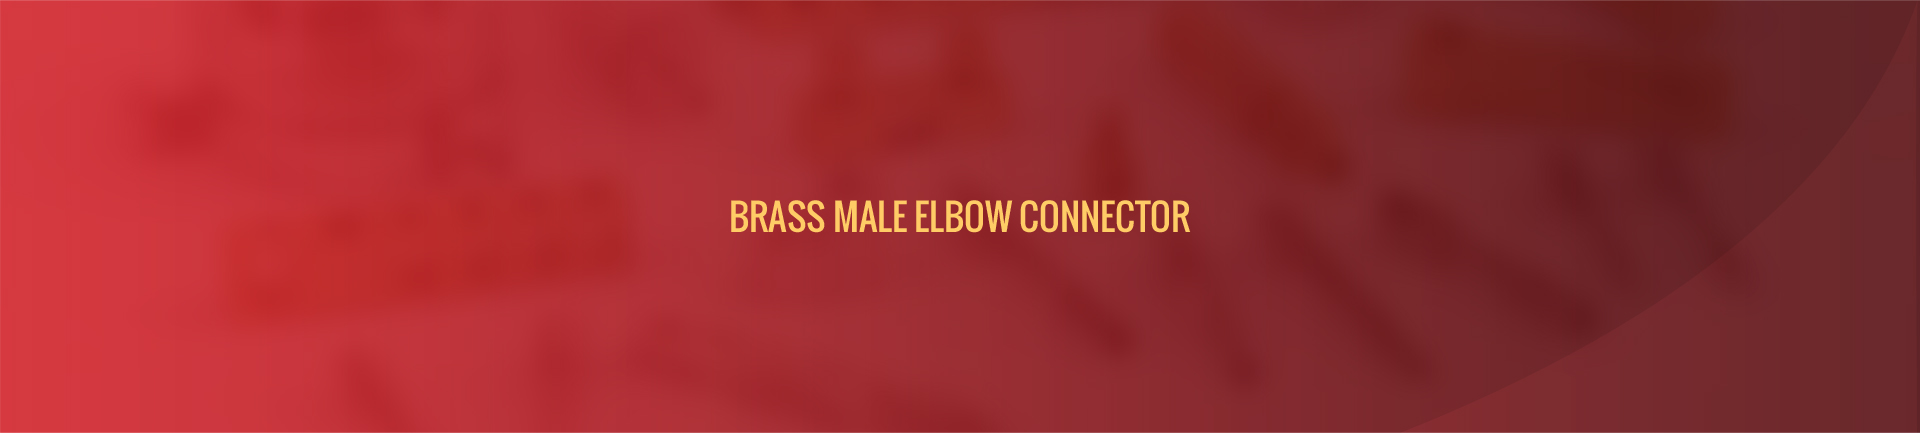 brass_male_elbow_connector-banner